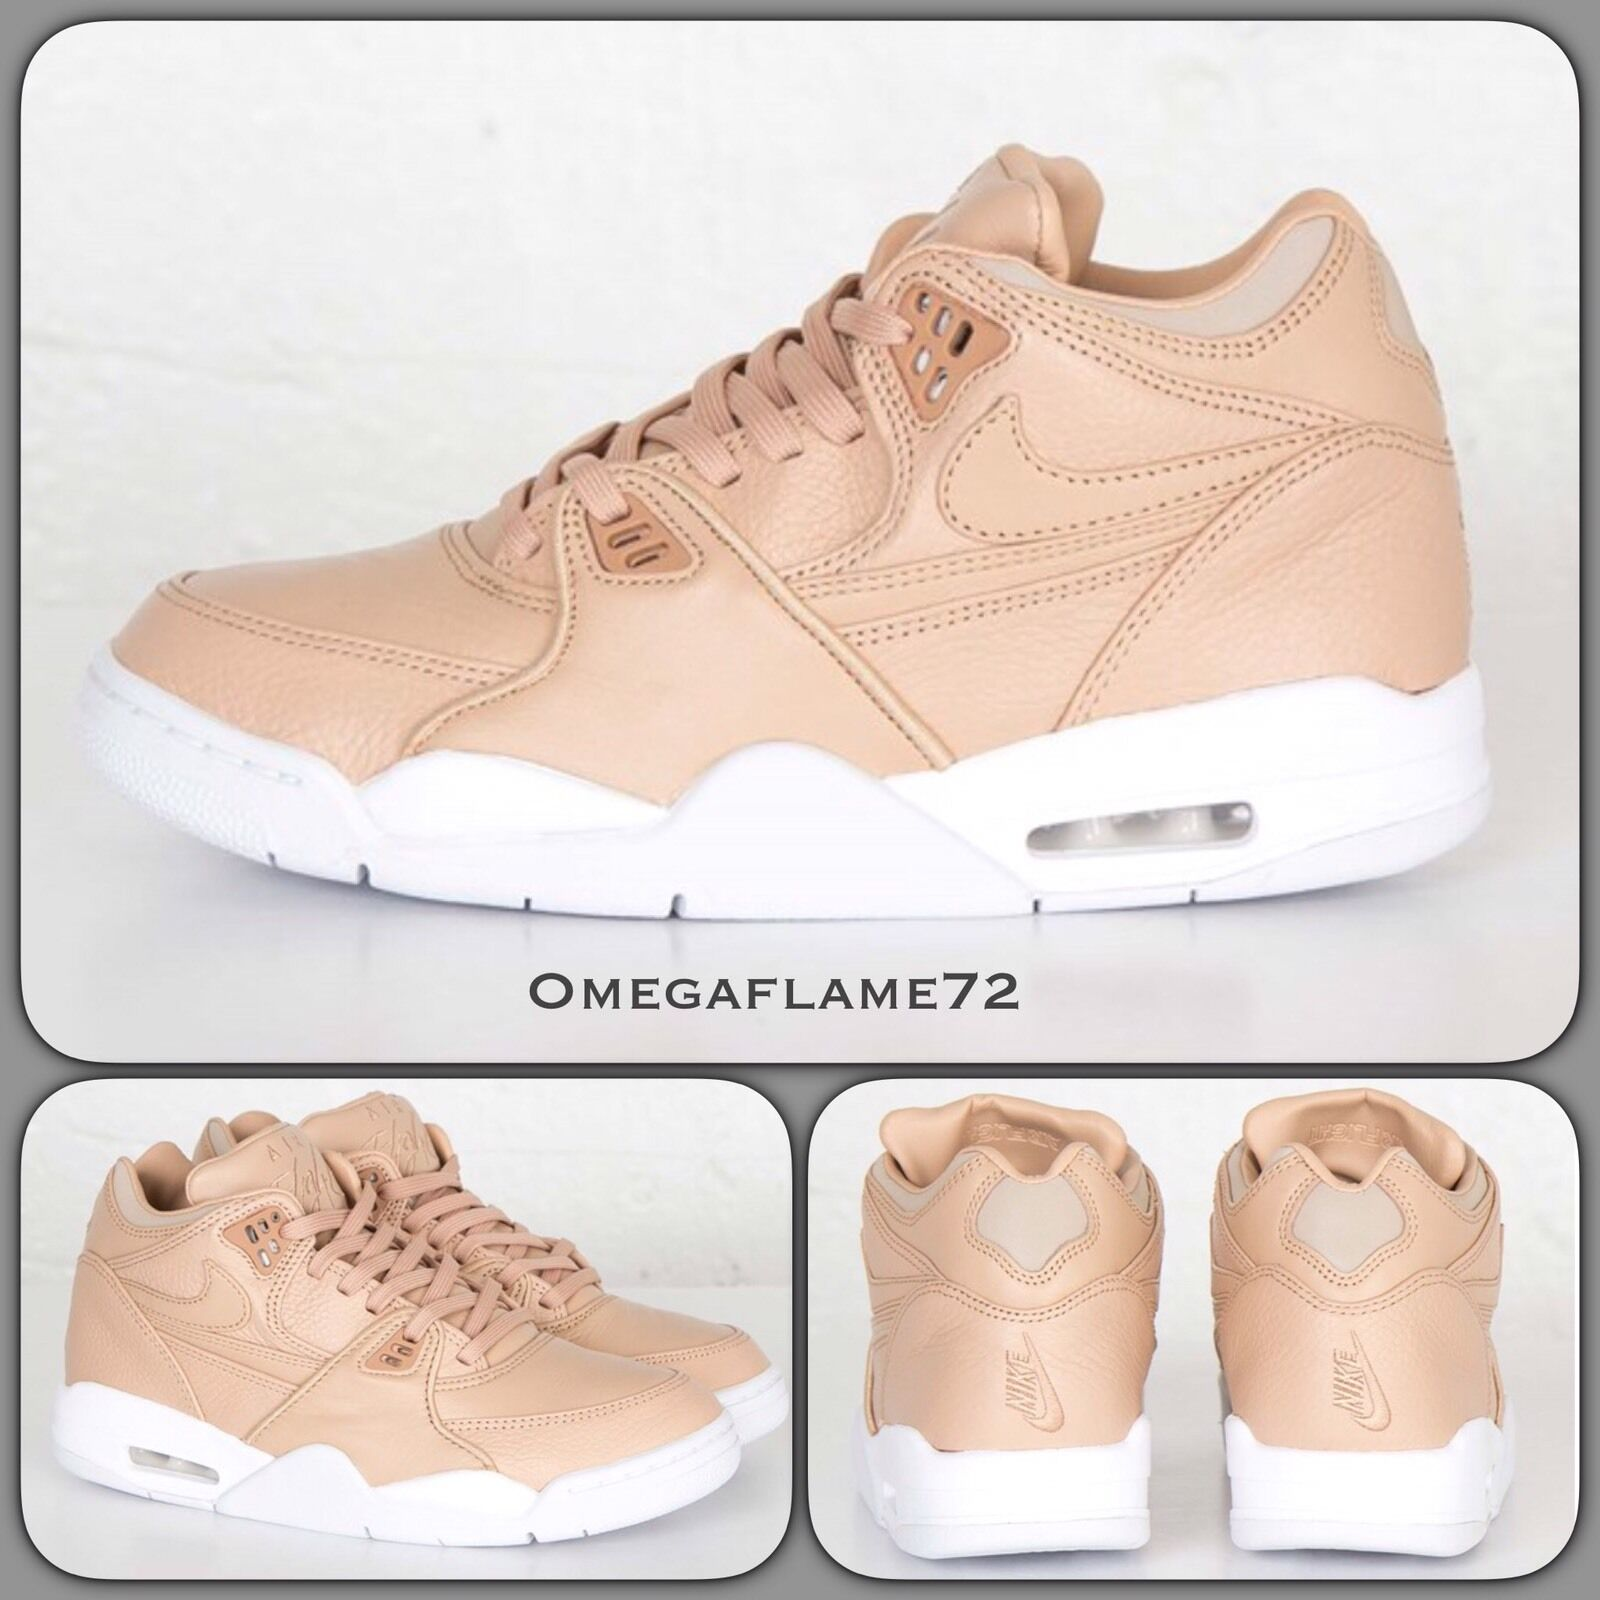 NikeLab Air Flight 89 QS Vachetta Leder 828295-200 UK 9.5 8.5 EU 43 US 9.5 UK Nike 555346